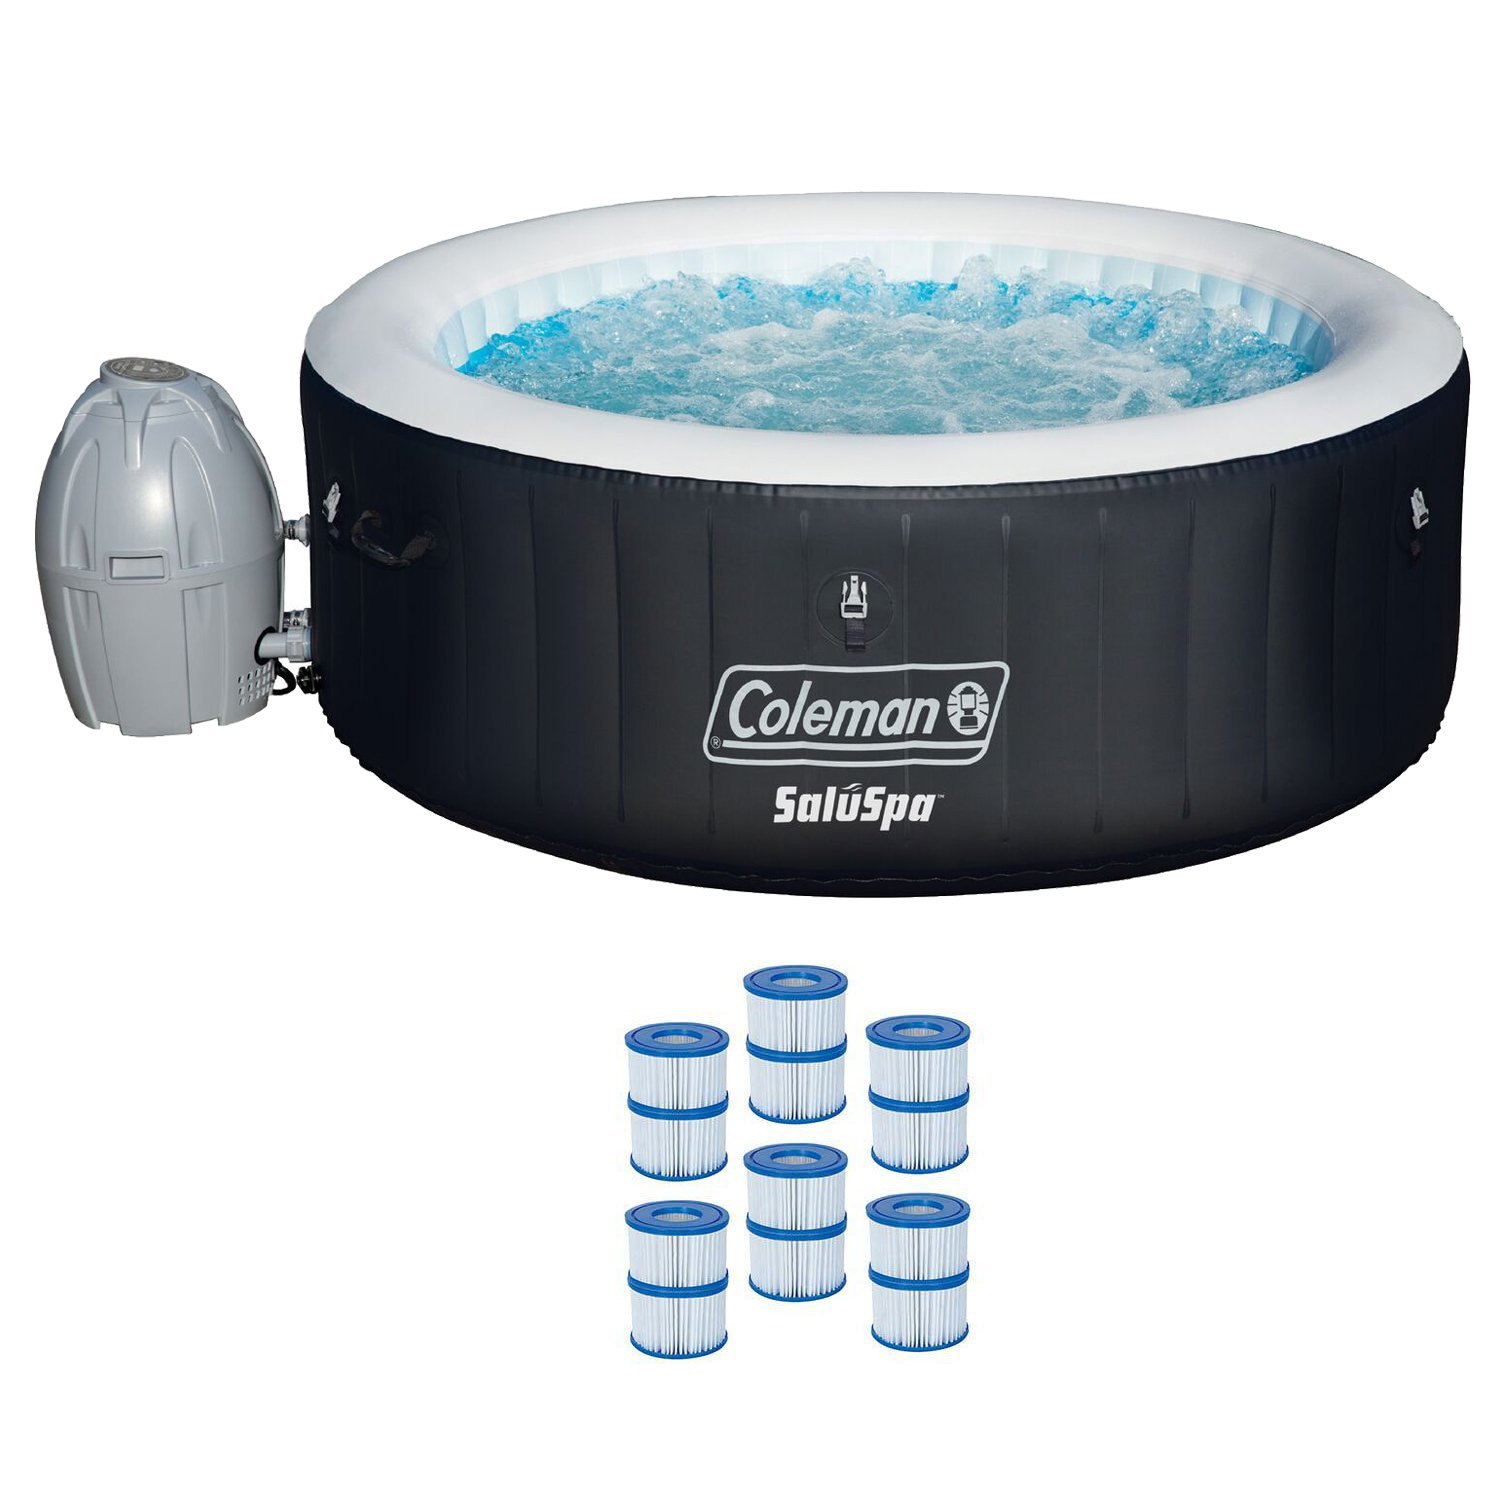 Coleman 71'' x 26'' Inflatable Spa 4-Person Hot Tub with 6 Filter Cartridges